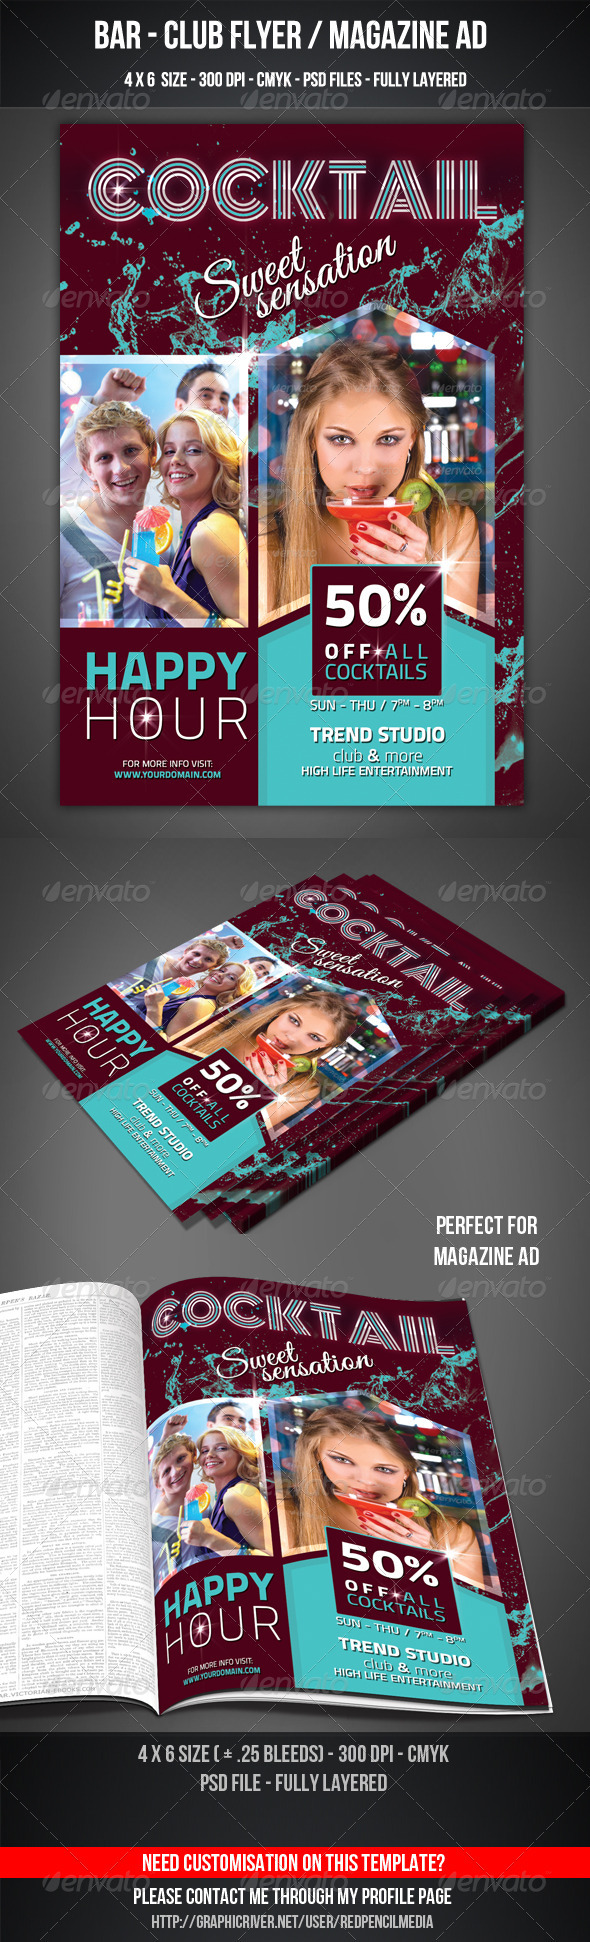 GraphicRiver Cocktail Club Bar Flyer 3589653